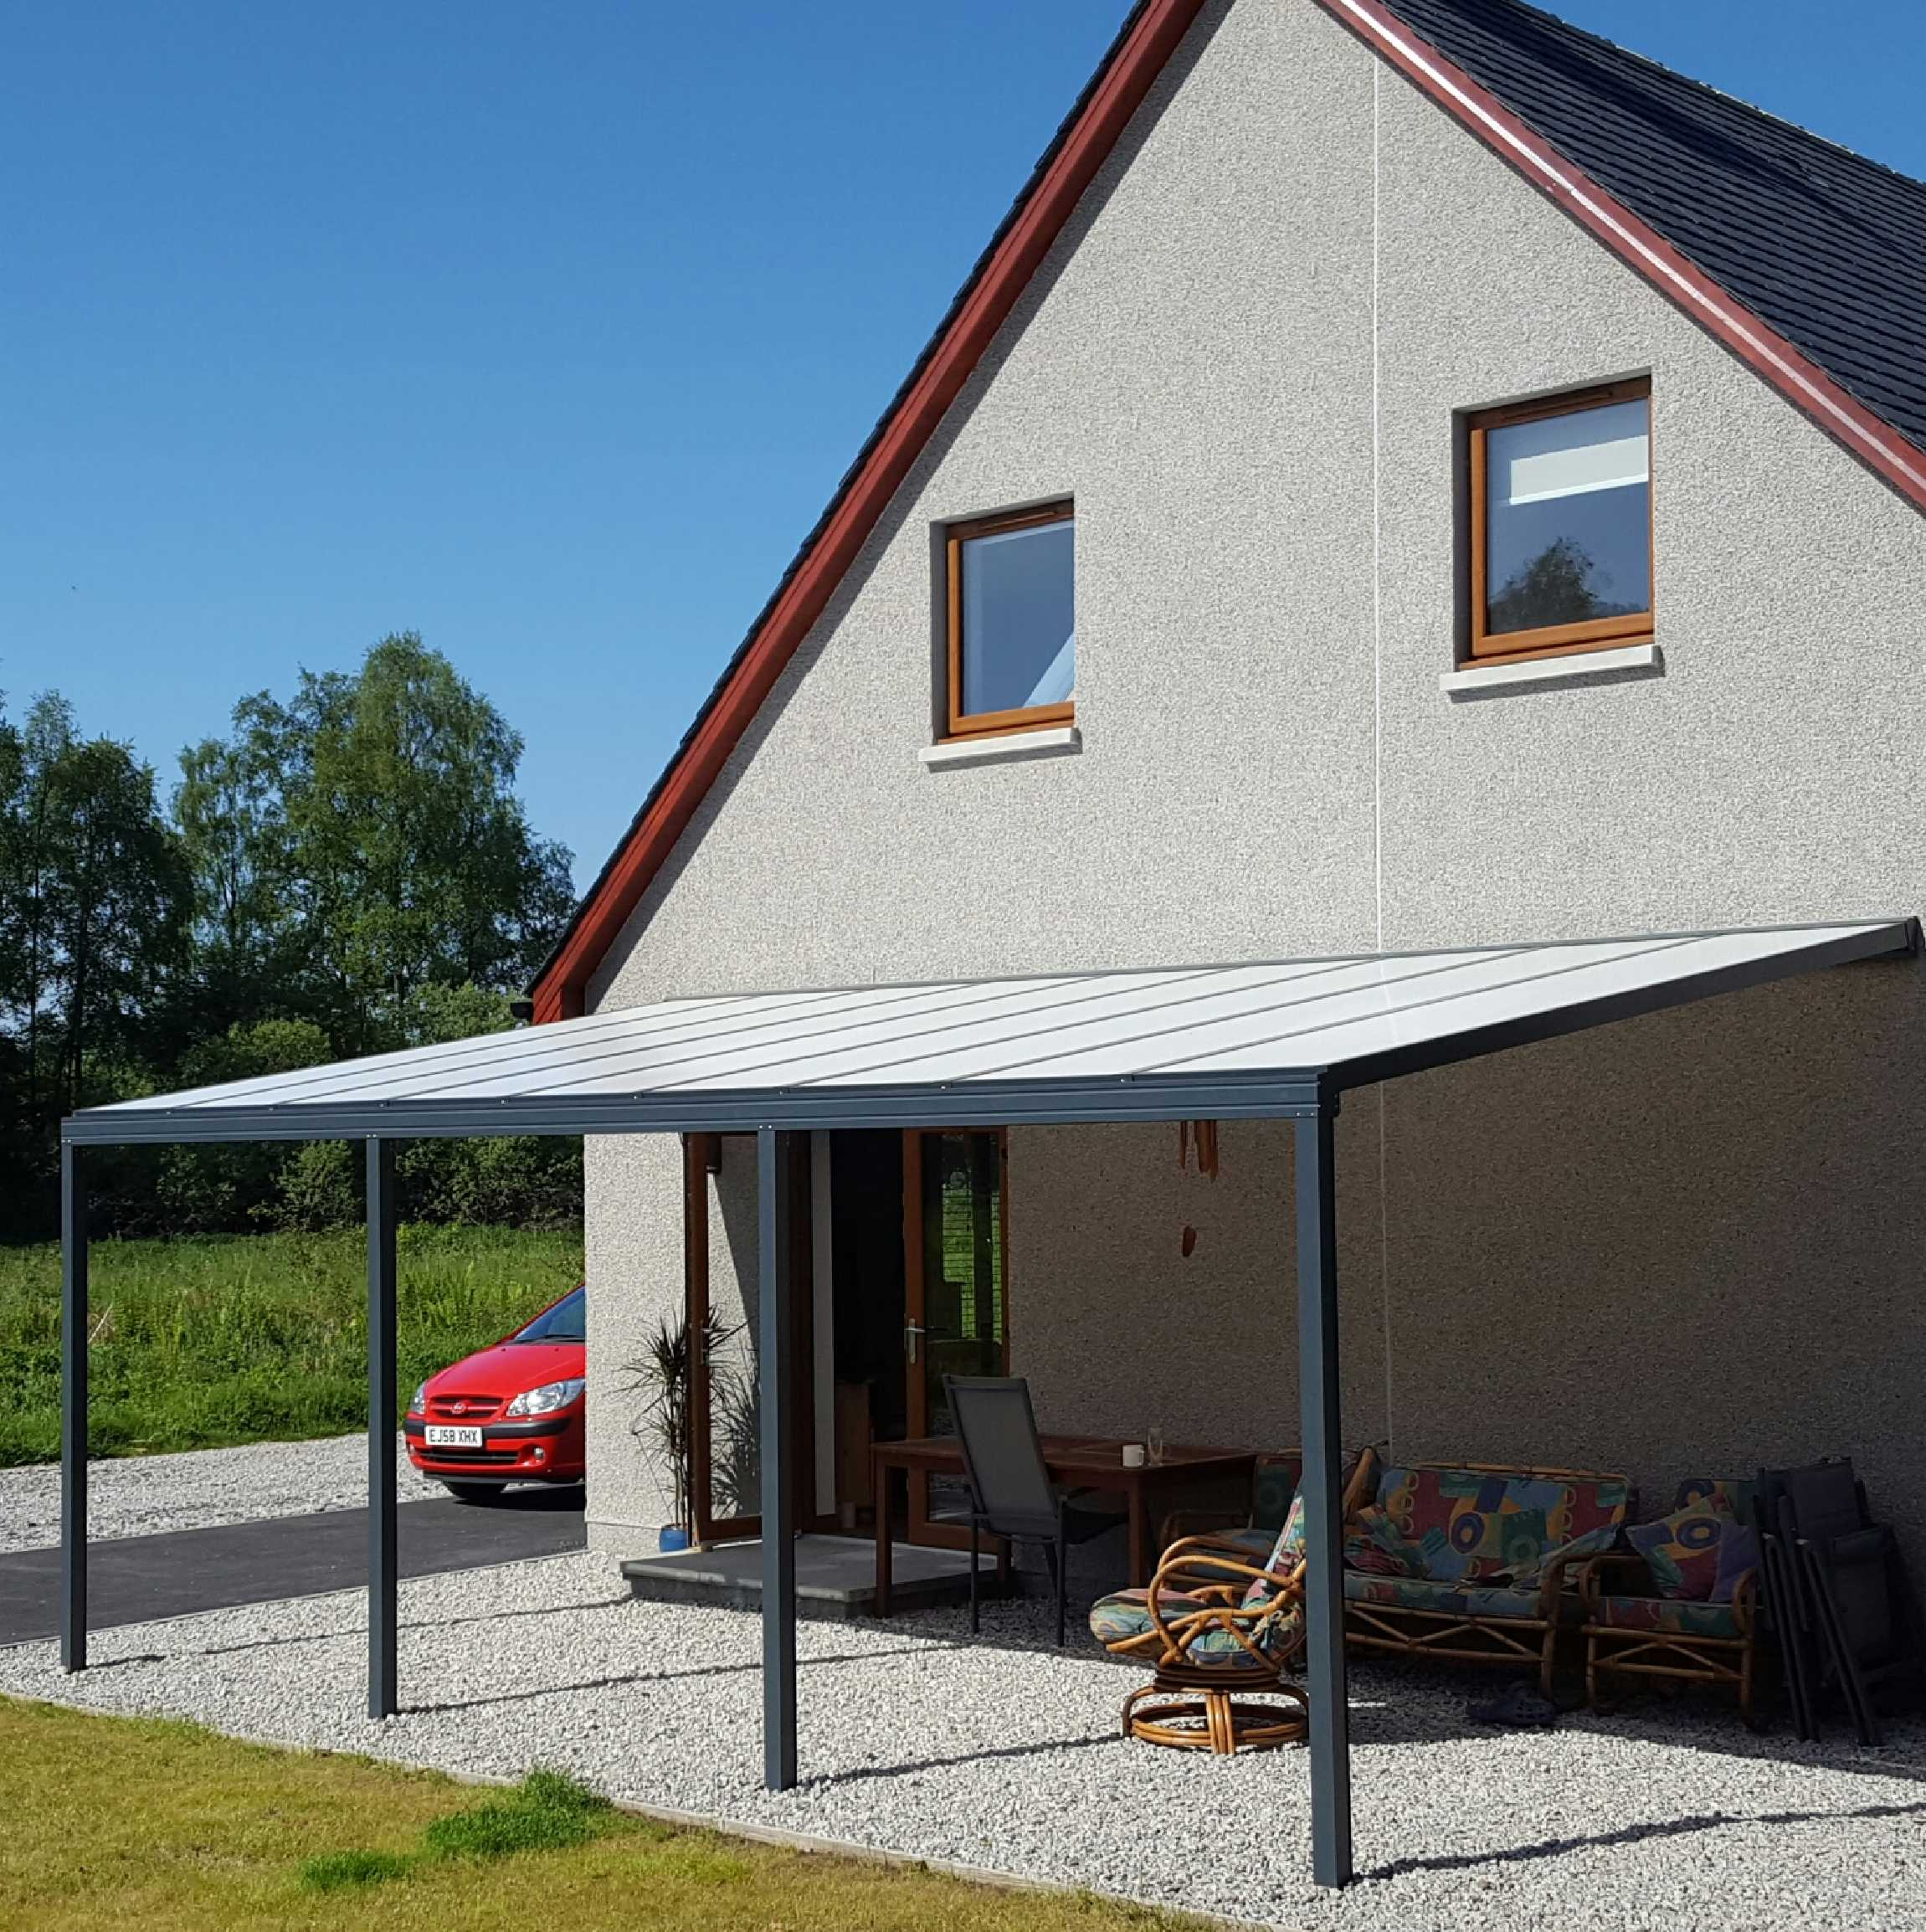 Great selection of Omega Smart Lean-To Canopy, Anthracite Grey, 16mm Polycarbonate Glazing - 6.3m (W) x 4.5m (P), (4) Supporting Posts